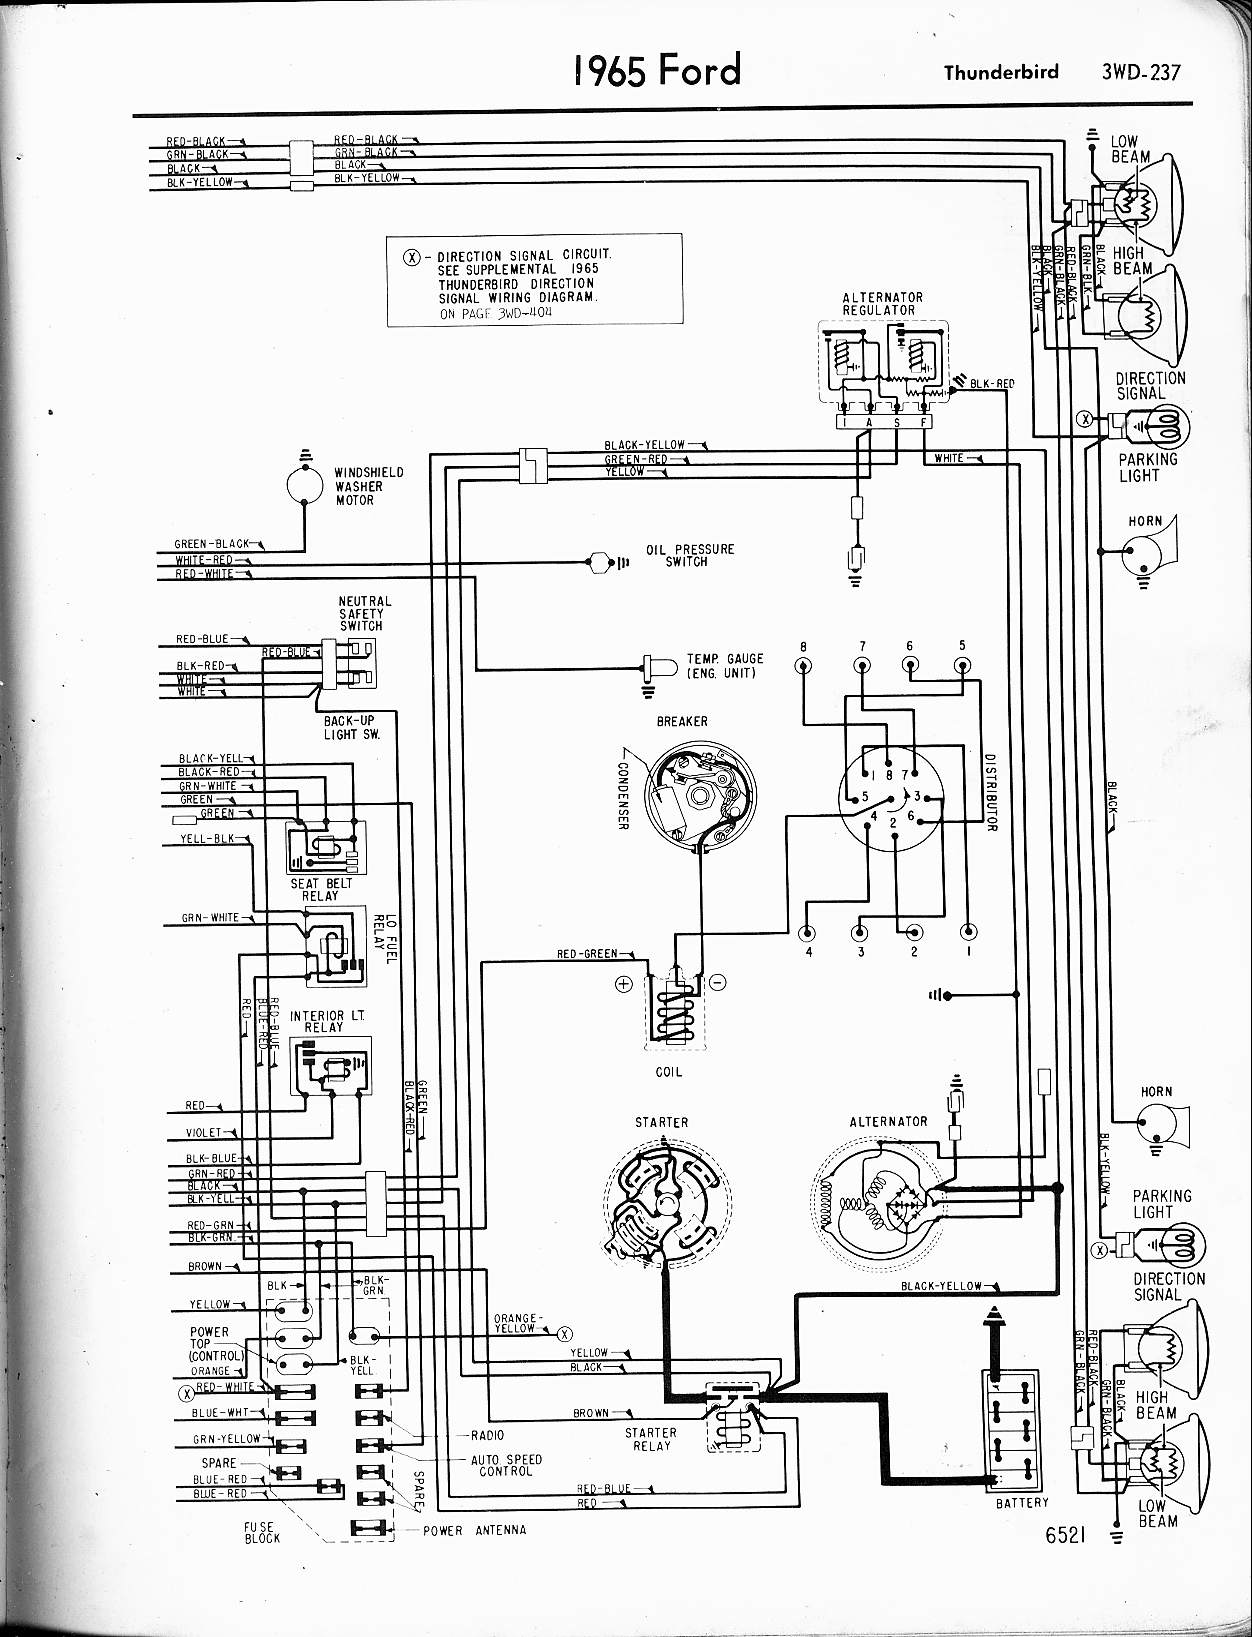 1966 Ford Alternator Wiring Diagram - Xeghaqqt.southdarfurradio.info  Ford Alternator Wiring Diagram on 1975 ford bronco wiring diagram, buick roadmaster radio wiring diagram, ford 3000 tractor wiring diagram, ford 4000 tractor wiring diagram, ford starter wiring diagram, gm alternator diagram, 1965 ford wiring schematic, 1965 ford ignition switch diagram, 1965 mustang horn assembly diagram, ford f250 solenoid diagram, ford 351 distributor wiring diagram, ford wiper motor wiring diagram, 1999 dodge grand caravan wiring diagram, 1965 ford ranchero wiring-diagram, 1965 mustang fuse block diagram, 1965 ford mustang, ford alternator parts diagram, ford brake light wiring diagram, 1965 oldsmobile alternator wiring diagram, ford truck alternator diagram,